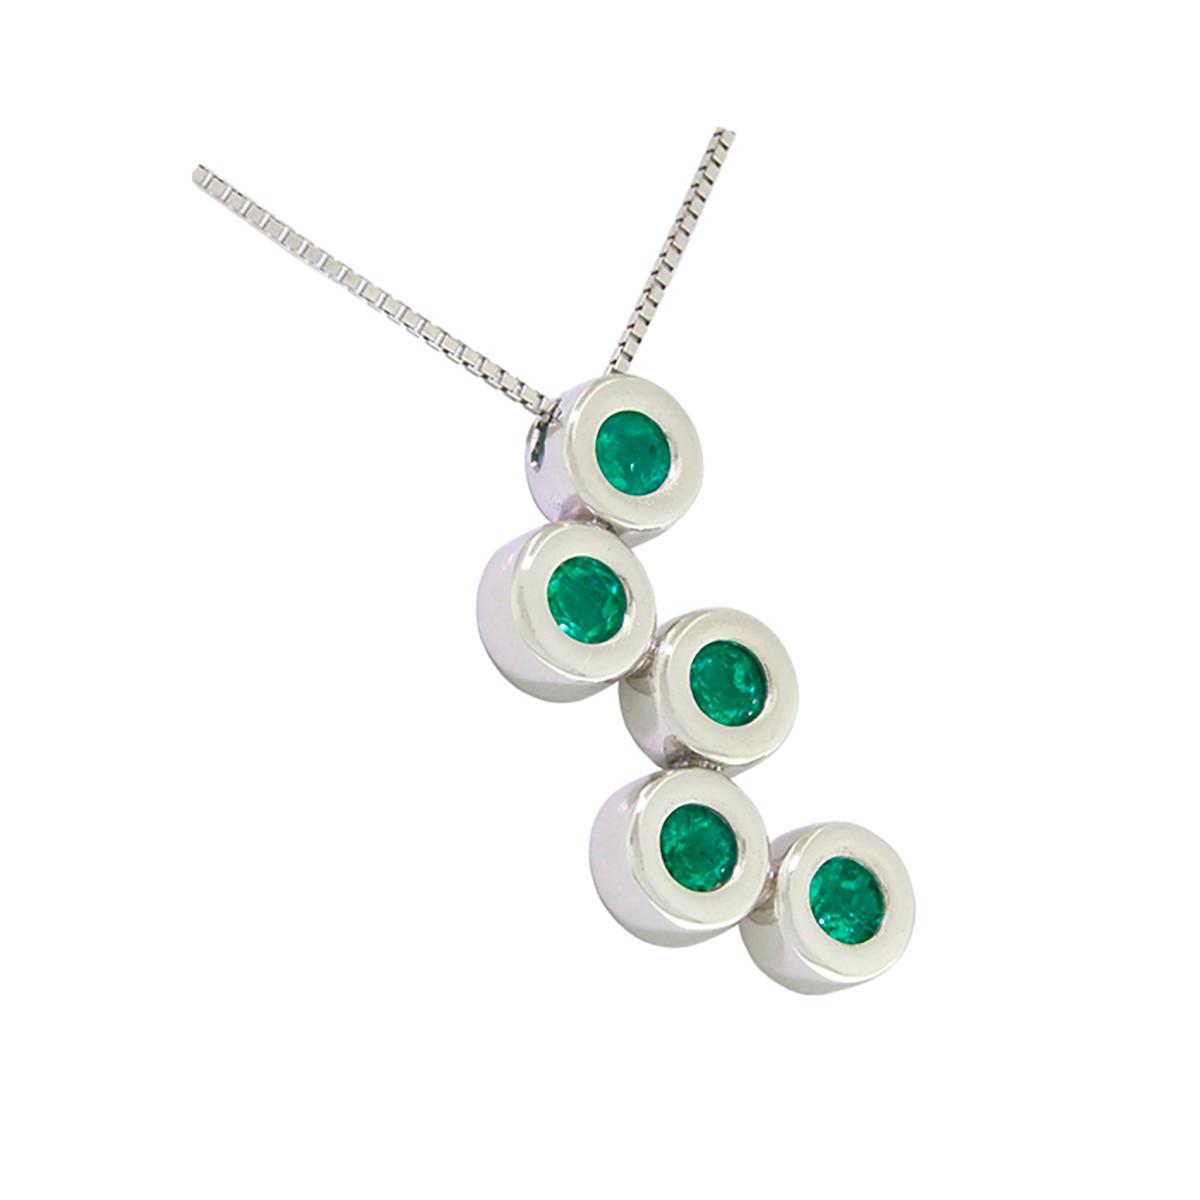 bezel-set-emerald-necklace-in-18k-white-gold-with-5-round-cut-emeralds